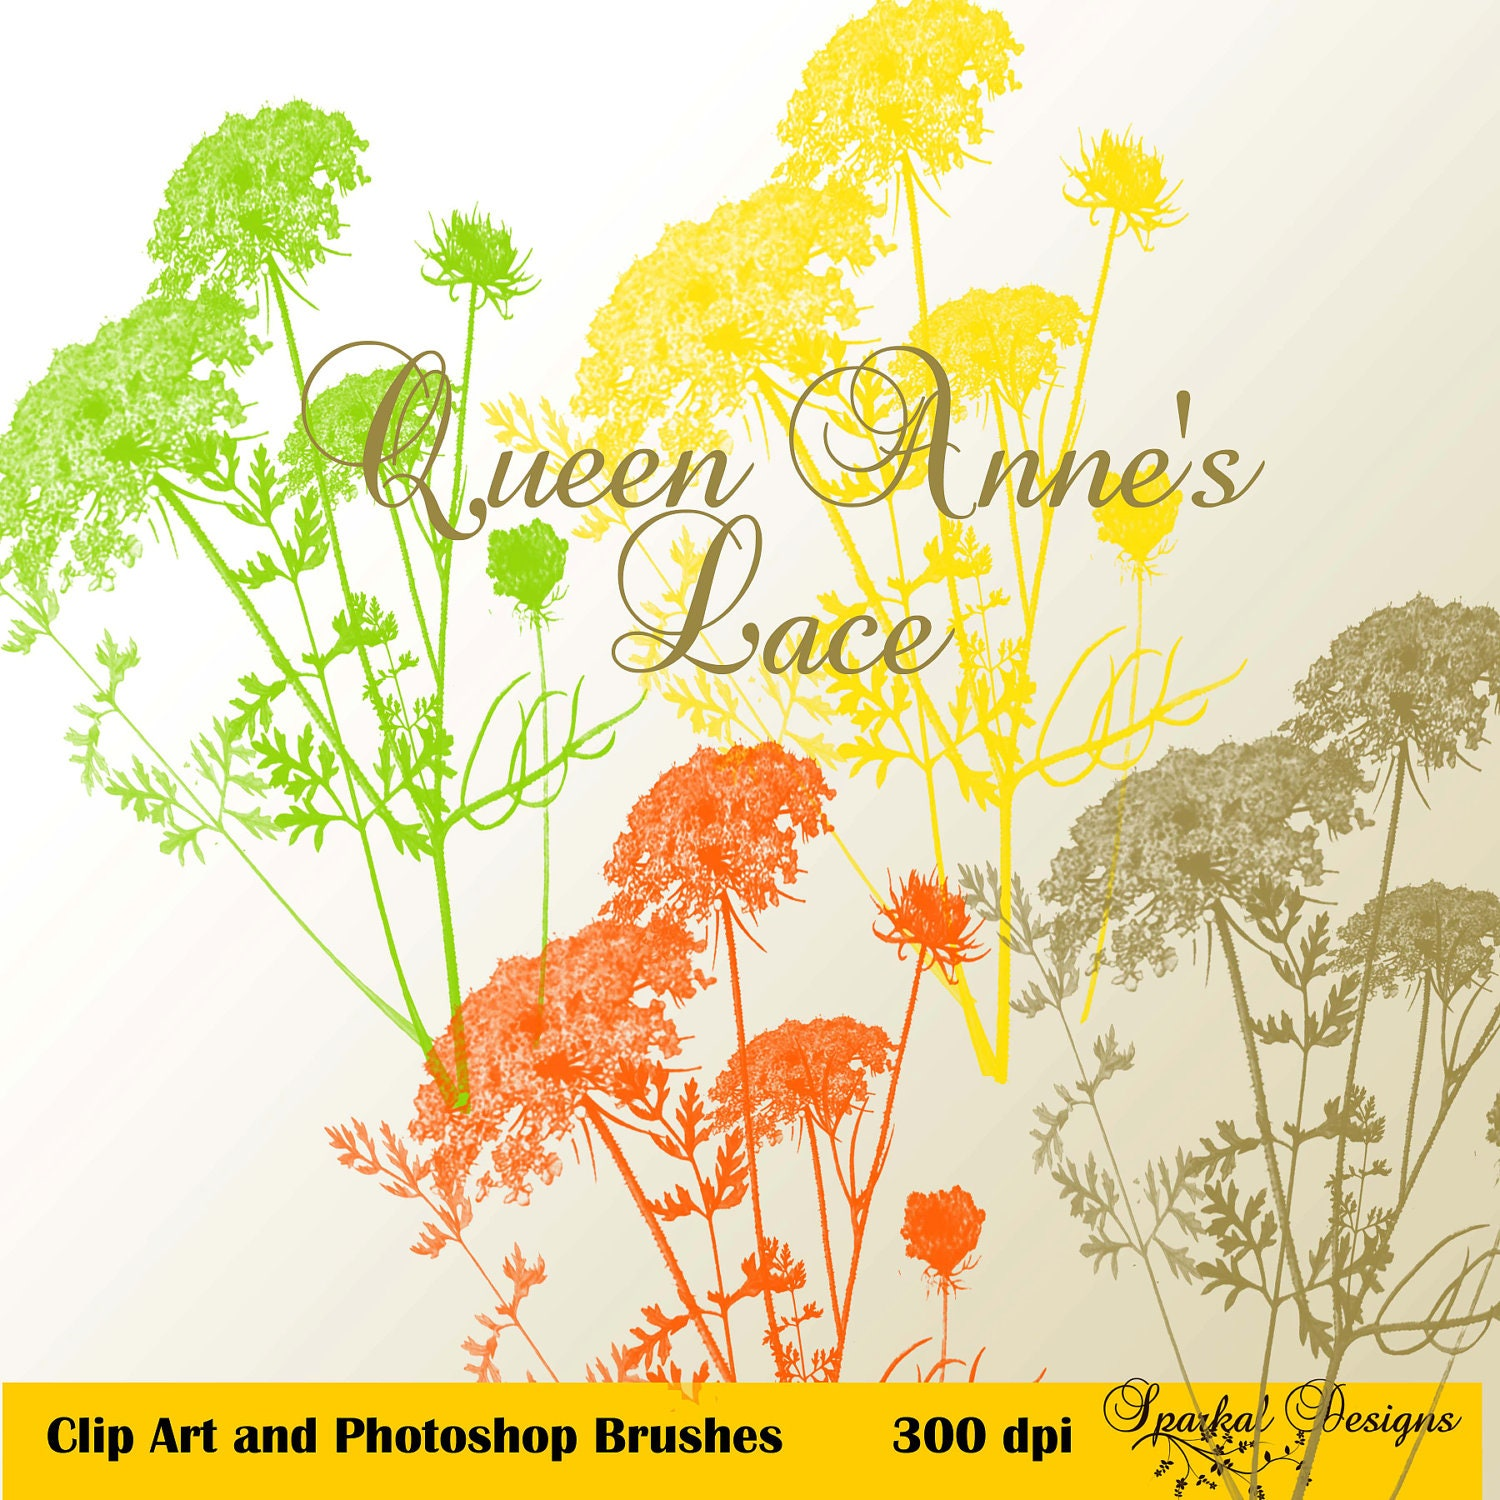 Queen Anne's Lace (Wild Carrot)